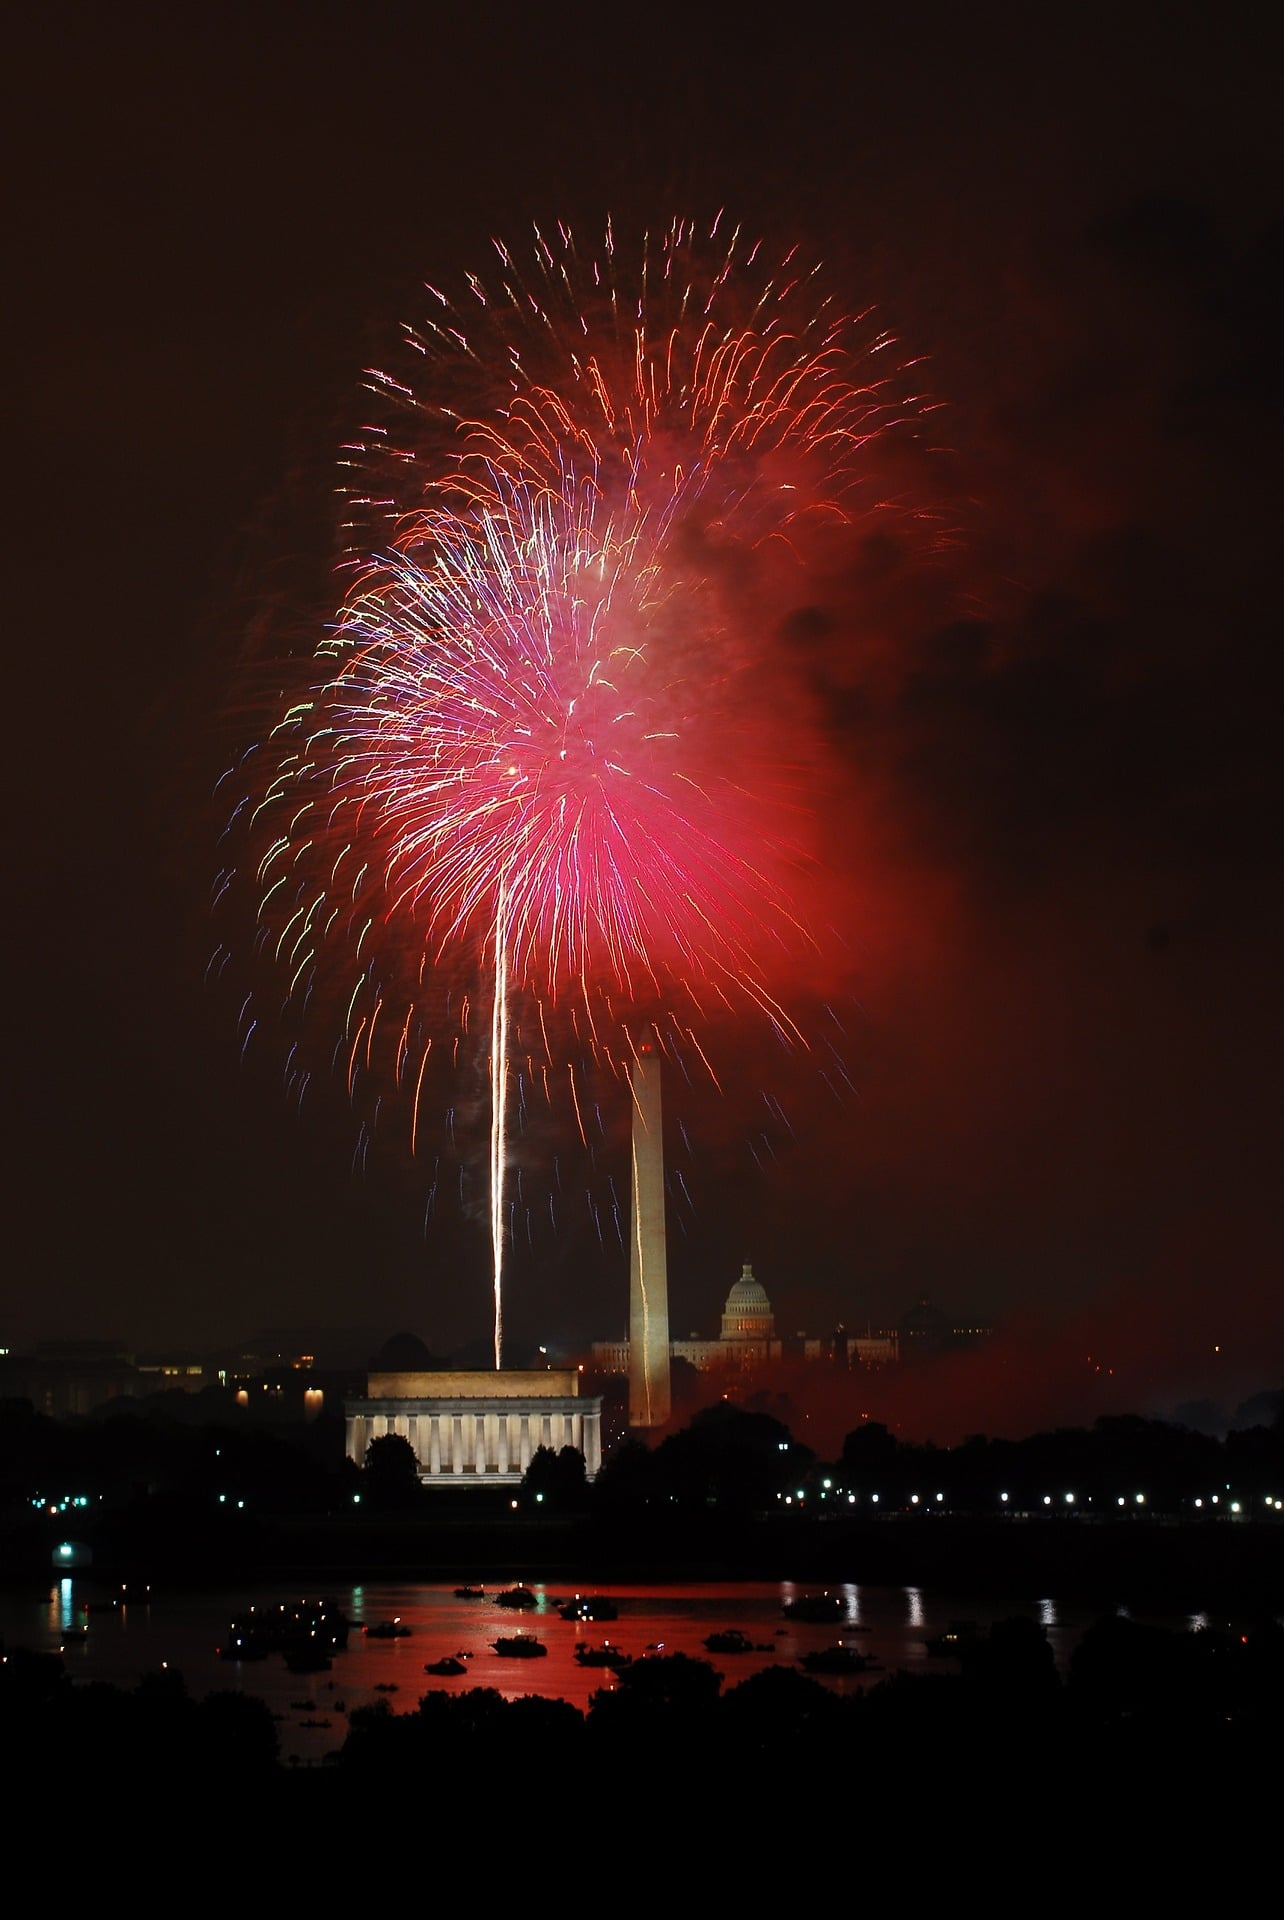 Agenda for the 4th of July in Washington DC